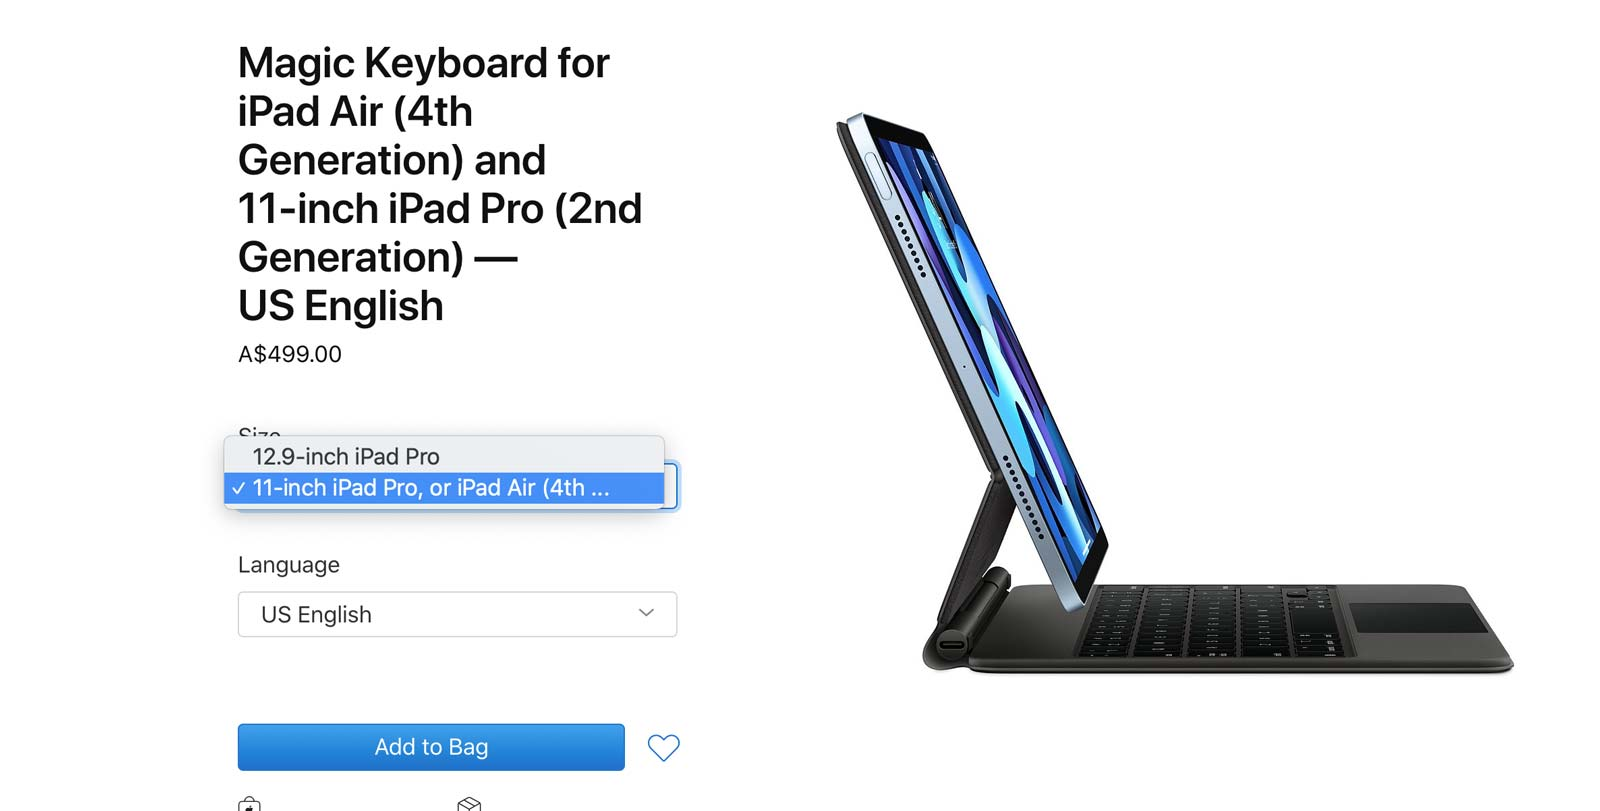 Magic Keyboard compatibility listed by the Apple Store site